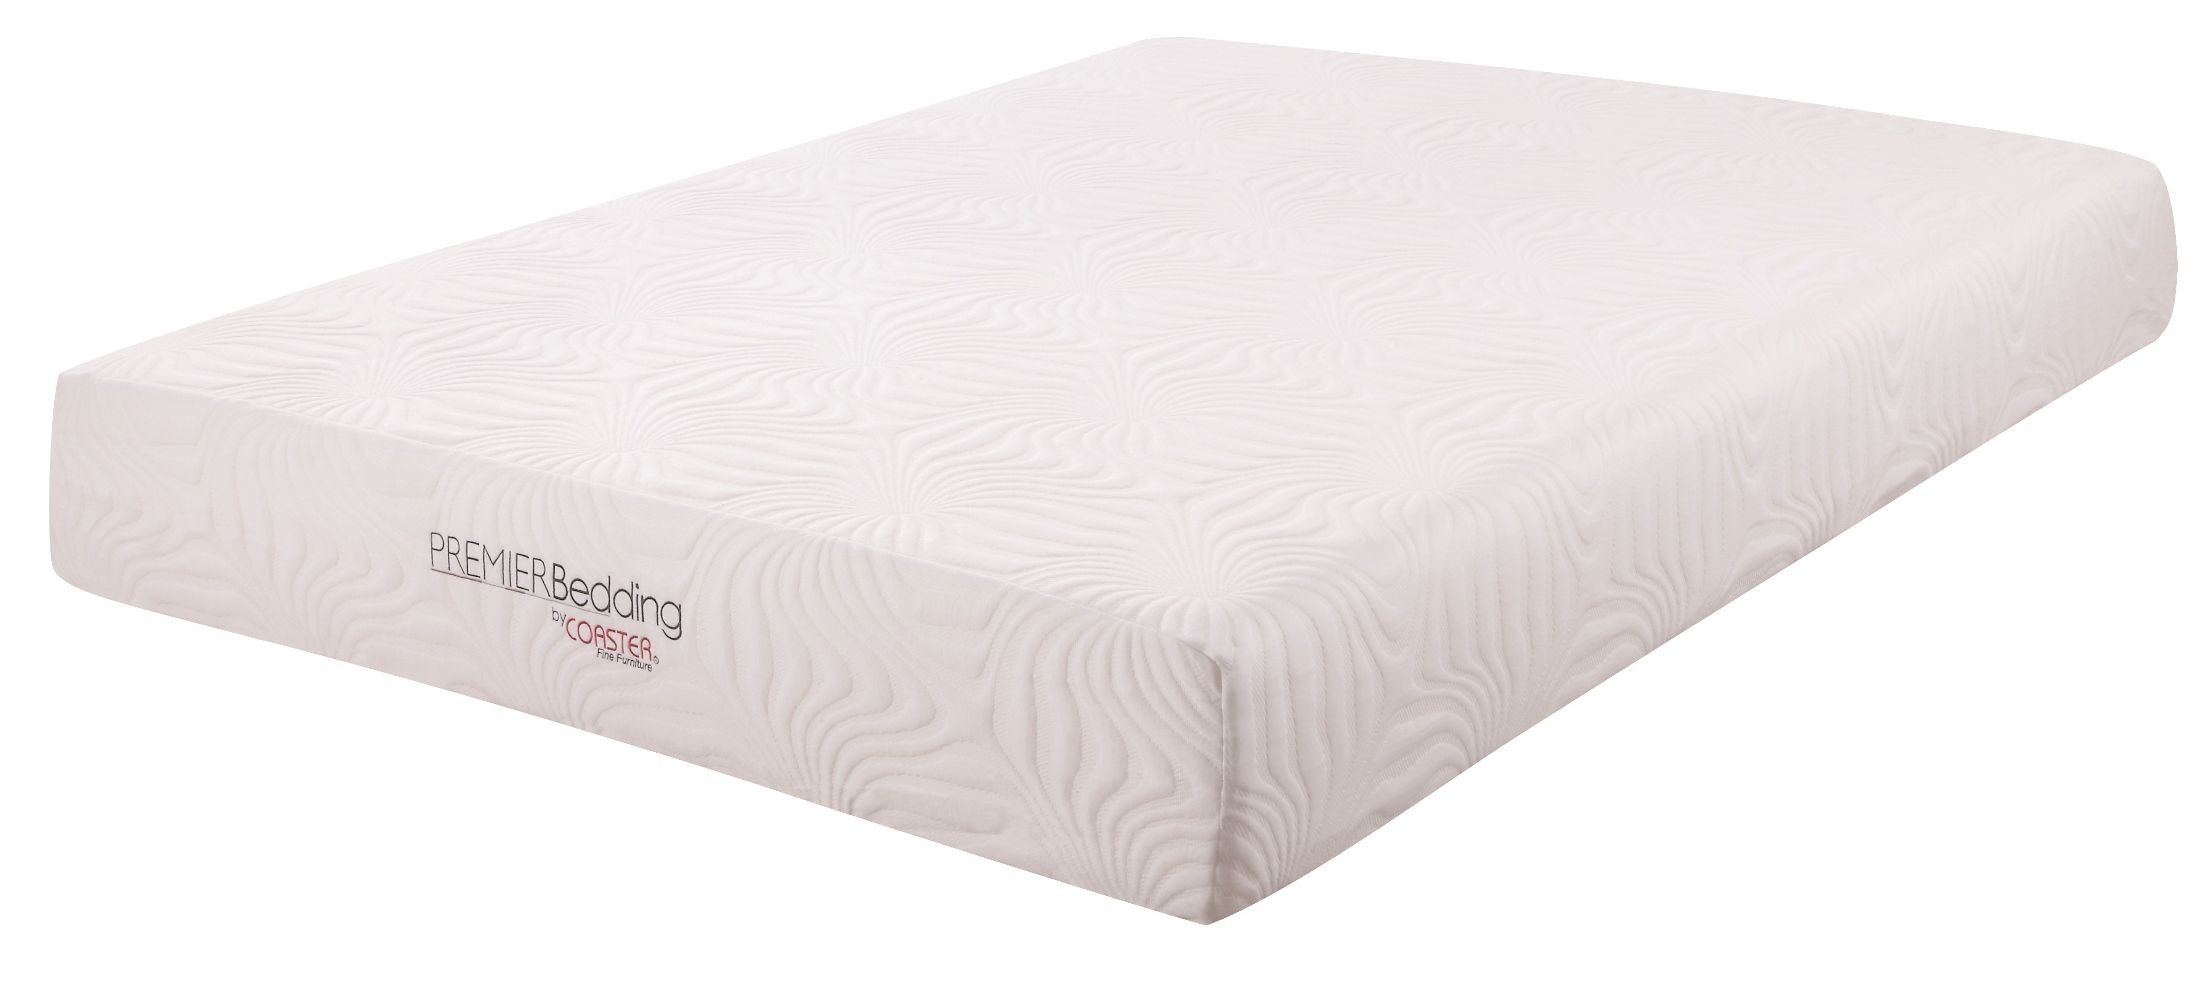 10 twin xl pocket coil mattress 350066tl coaster furniture Twin mattress xl